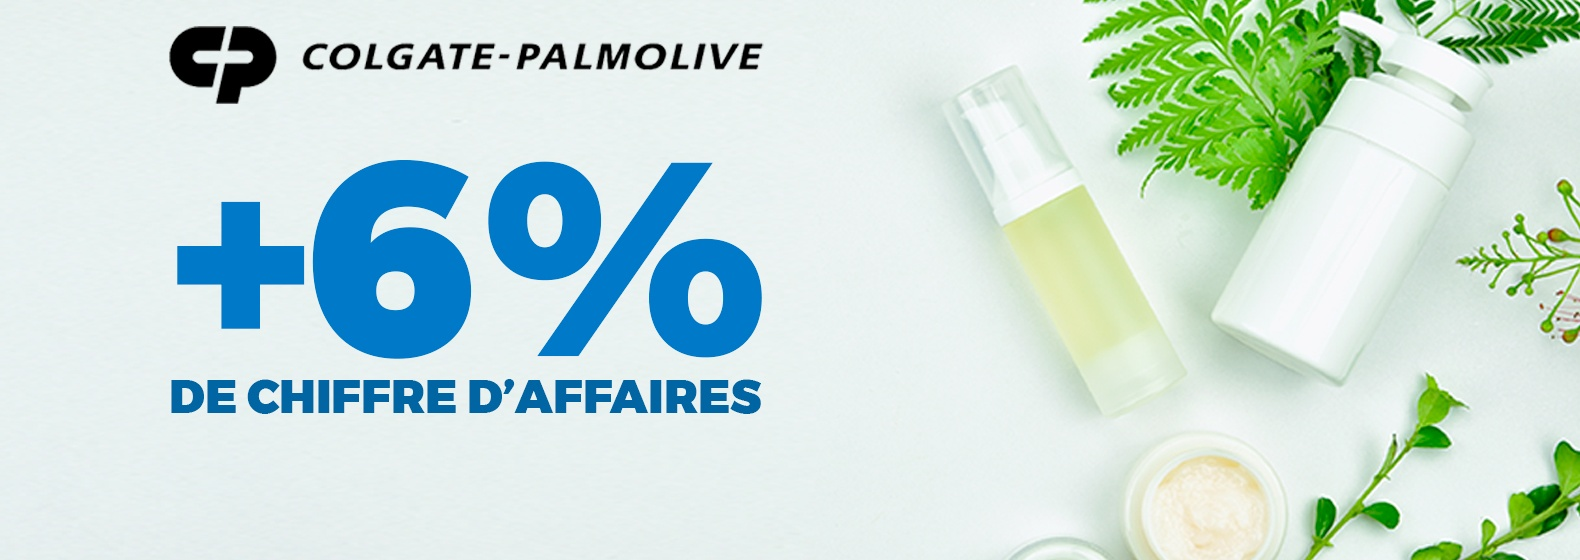 entete-article-colgate-palmolive.jpg